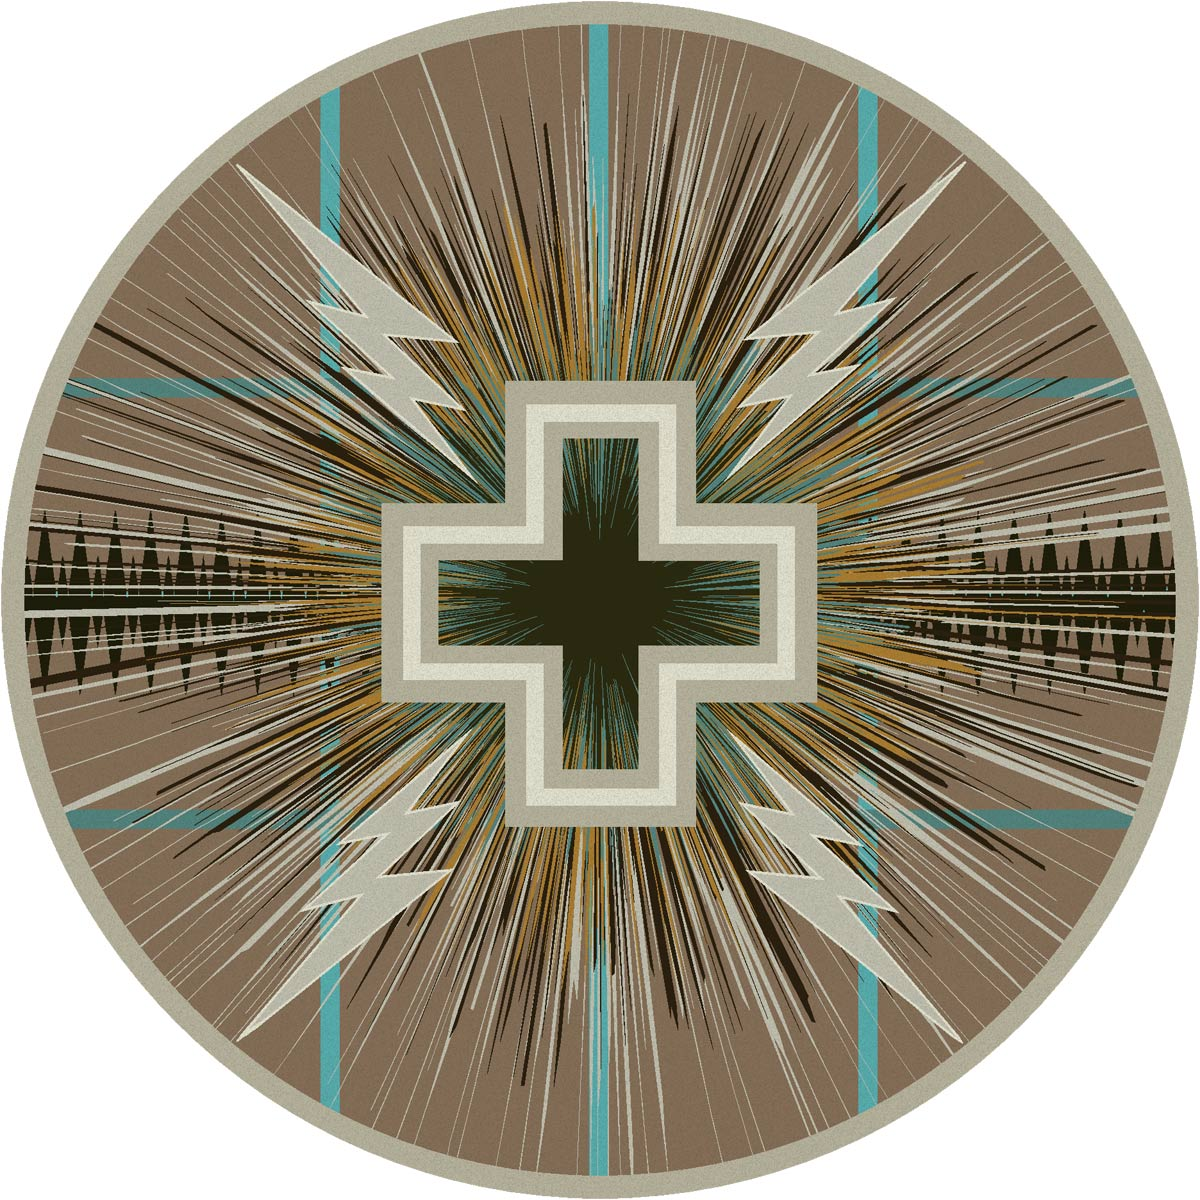 Temple Gray & Turquoise Rug - 8 Ft. Round